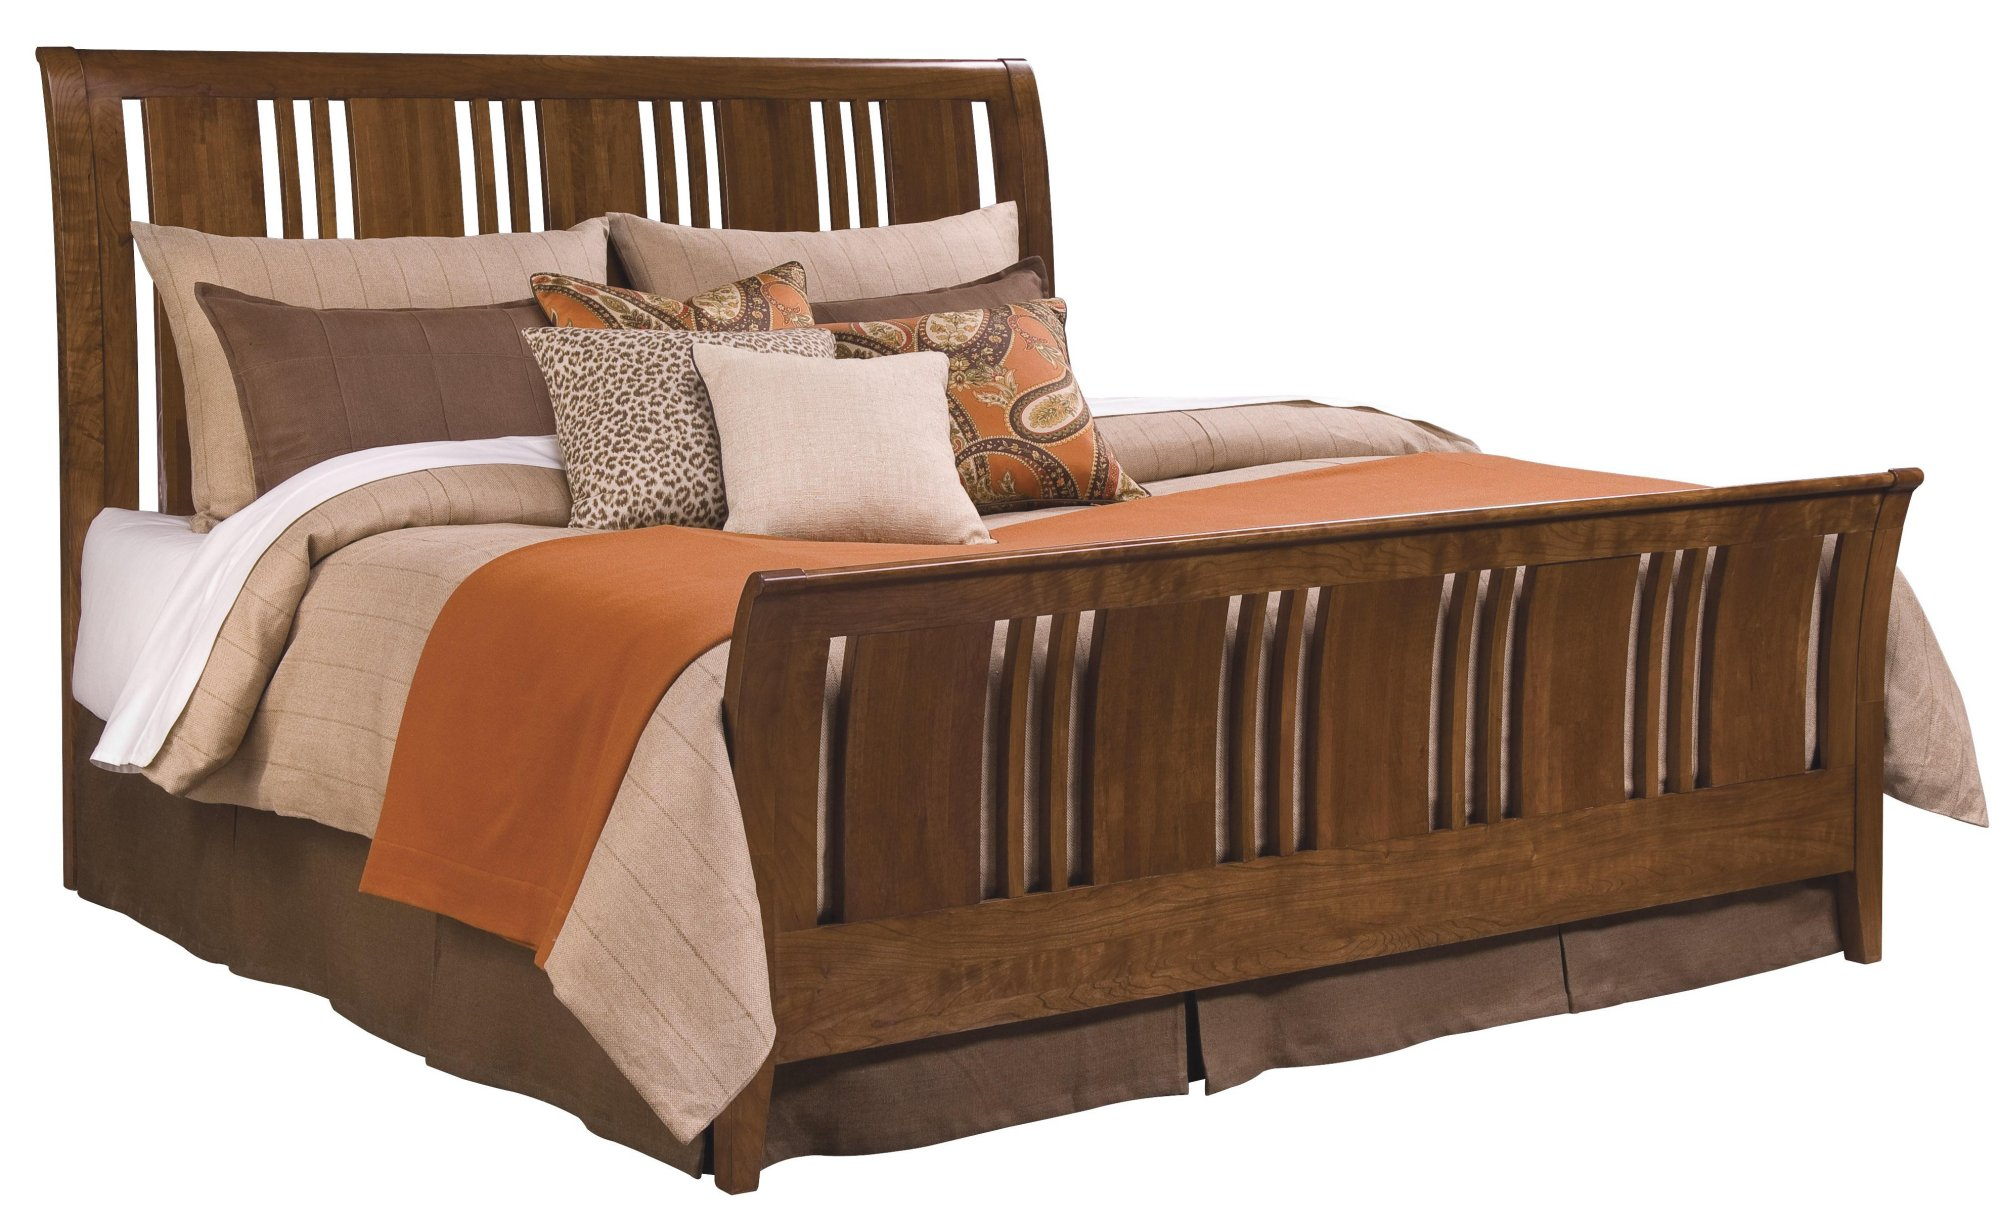 sleigh bed furniture is a classic bed design which can work perfectly ...